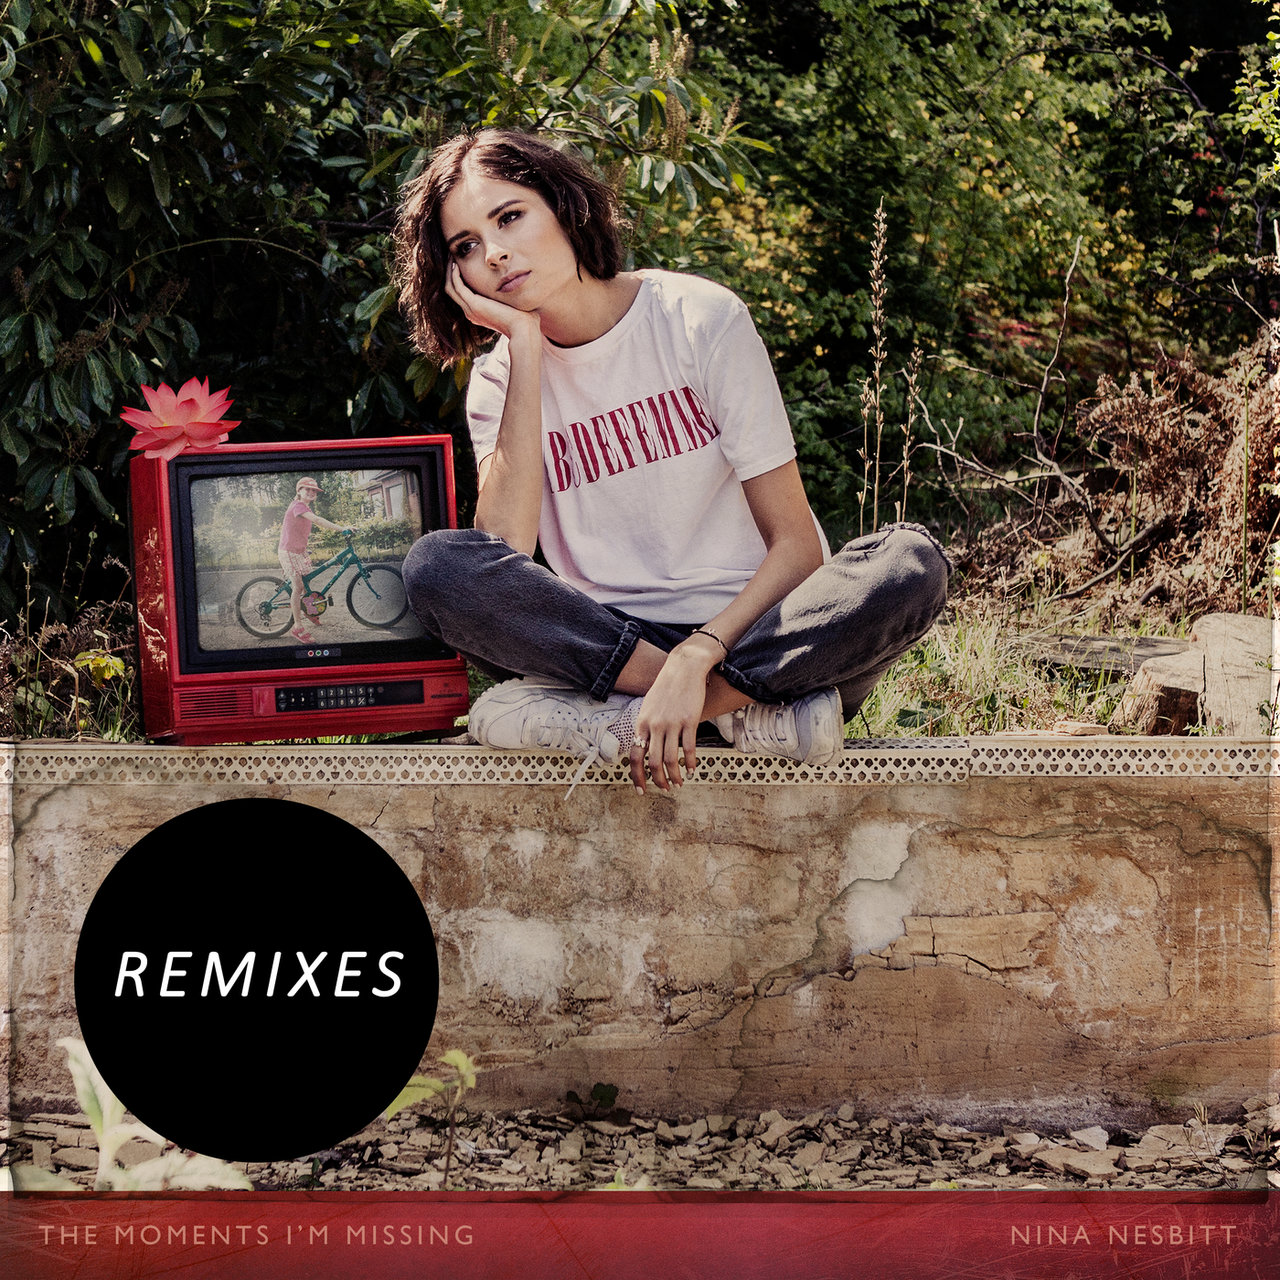 The Moments I'm Missing (Remixes)